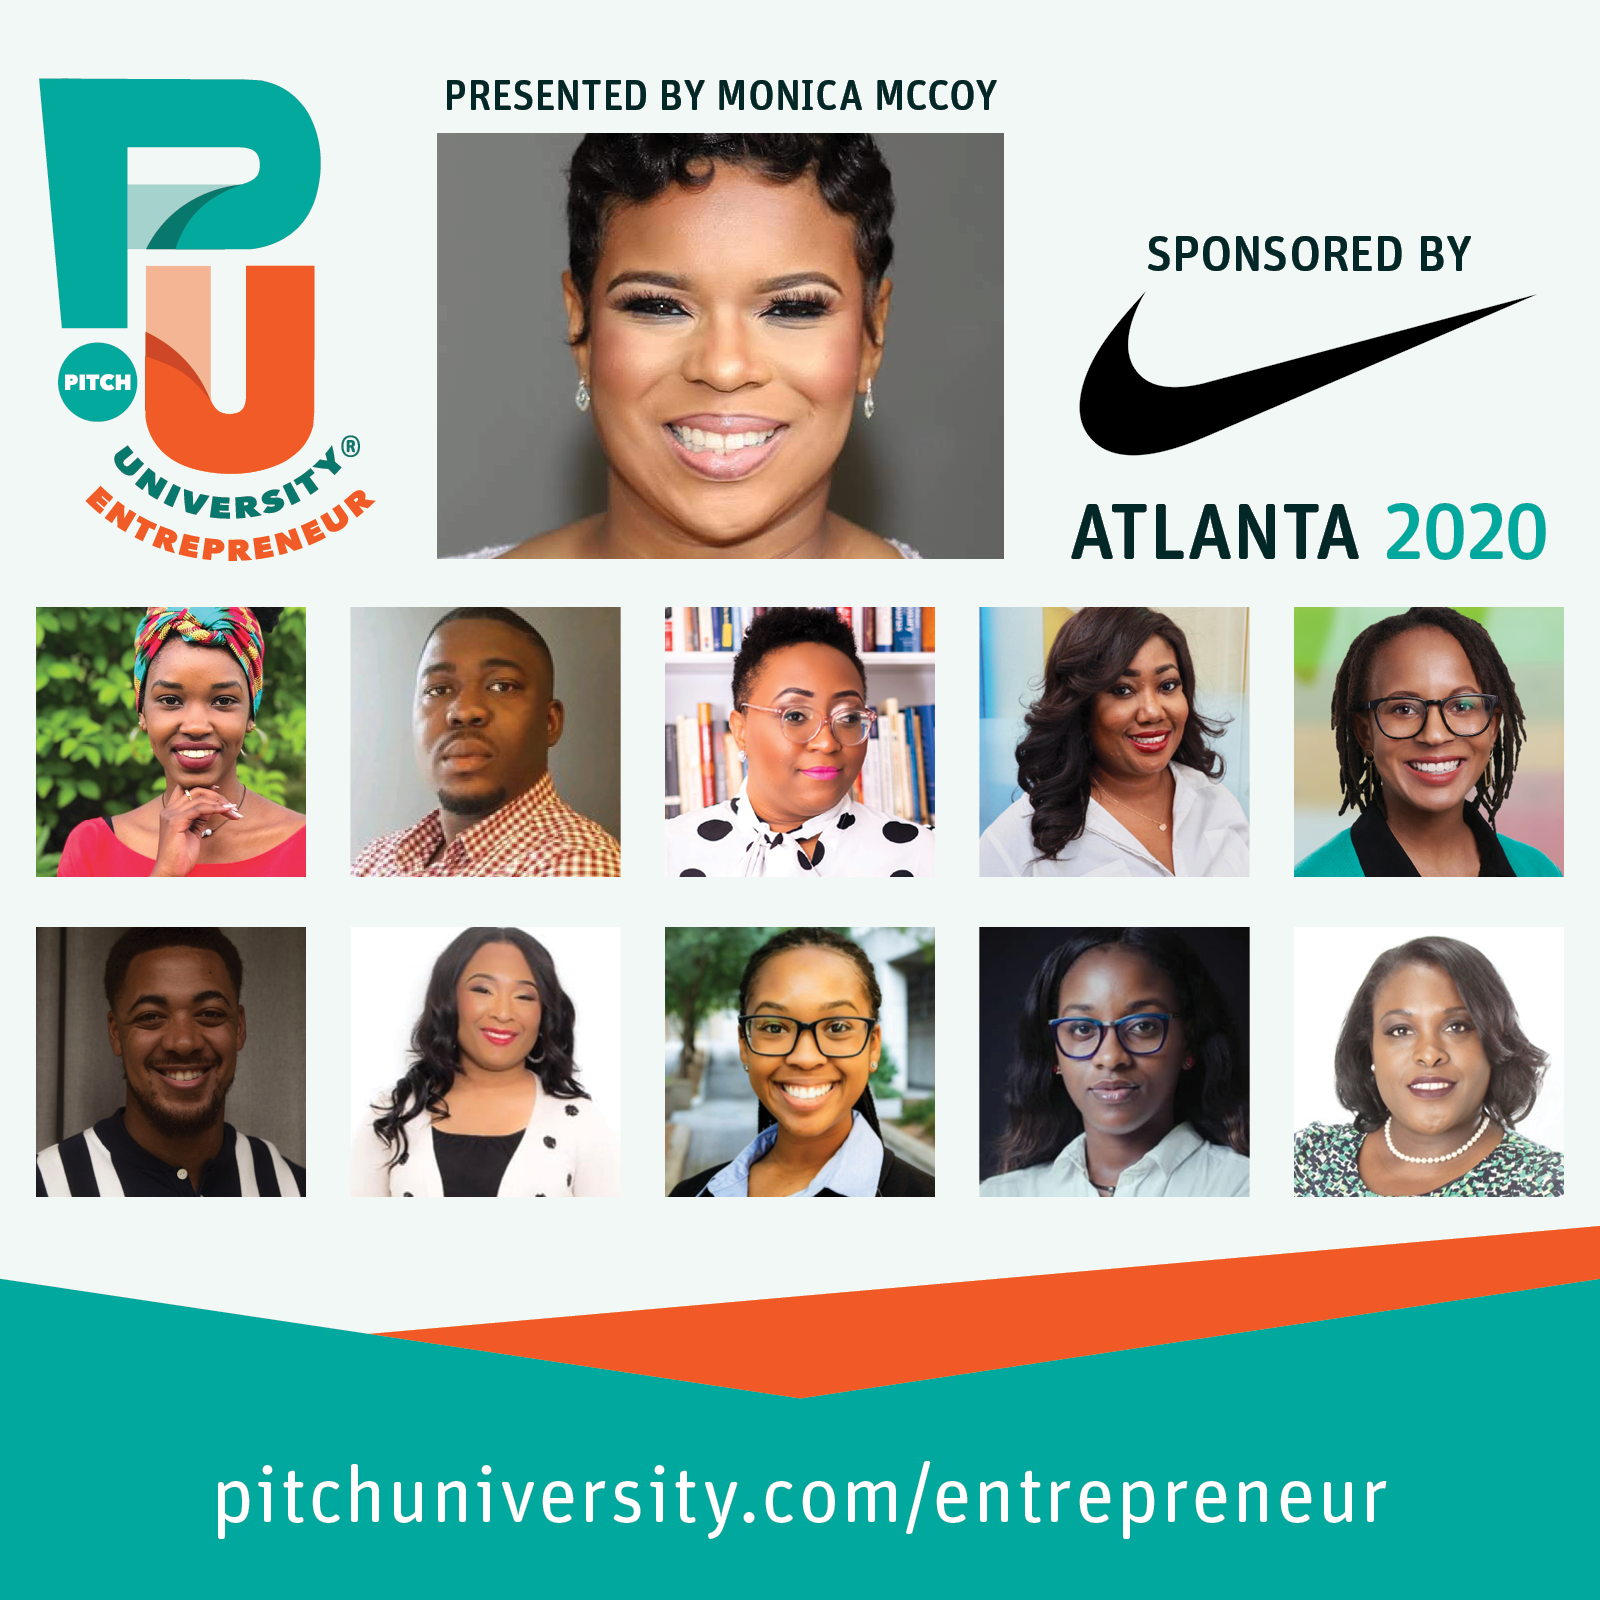 Pitch University Sponsored by Nike